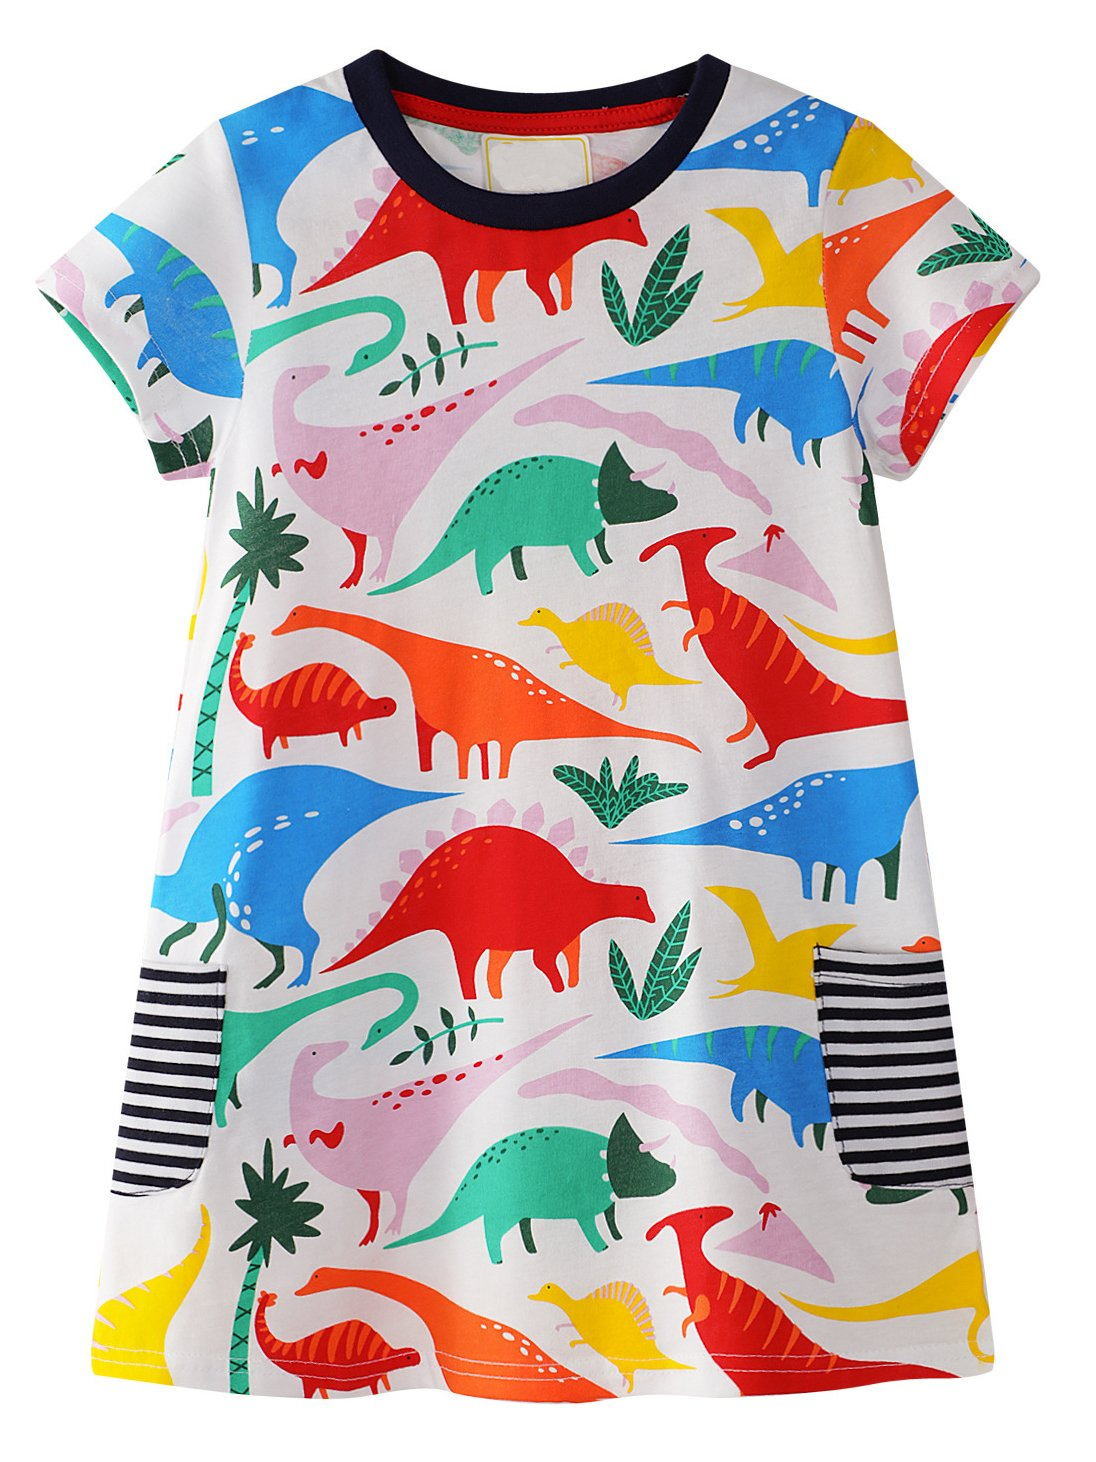 GSVIBK Kid Girl Cotton Dress Toddler Short Sleeve Dress Cartoon Cute Dresses Crew-Neck Summer (6T, 1Dinosaur-3)